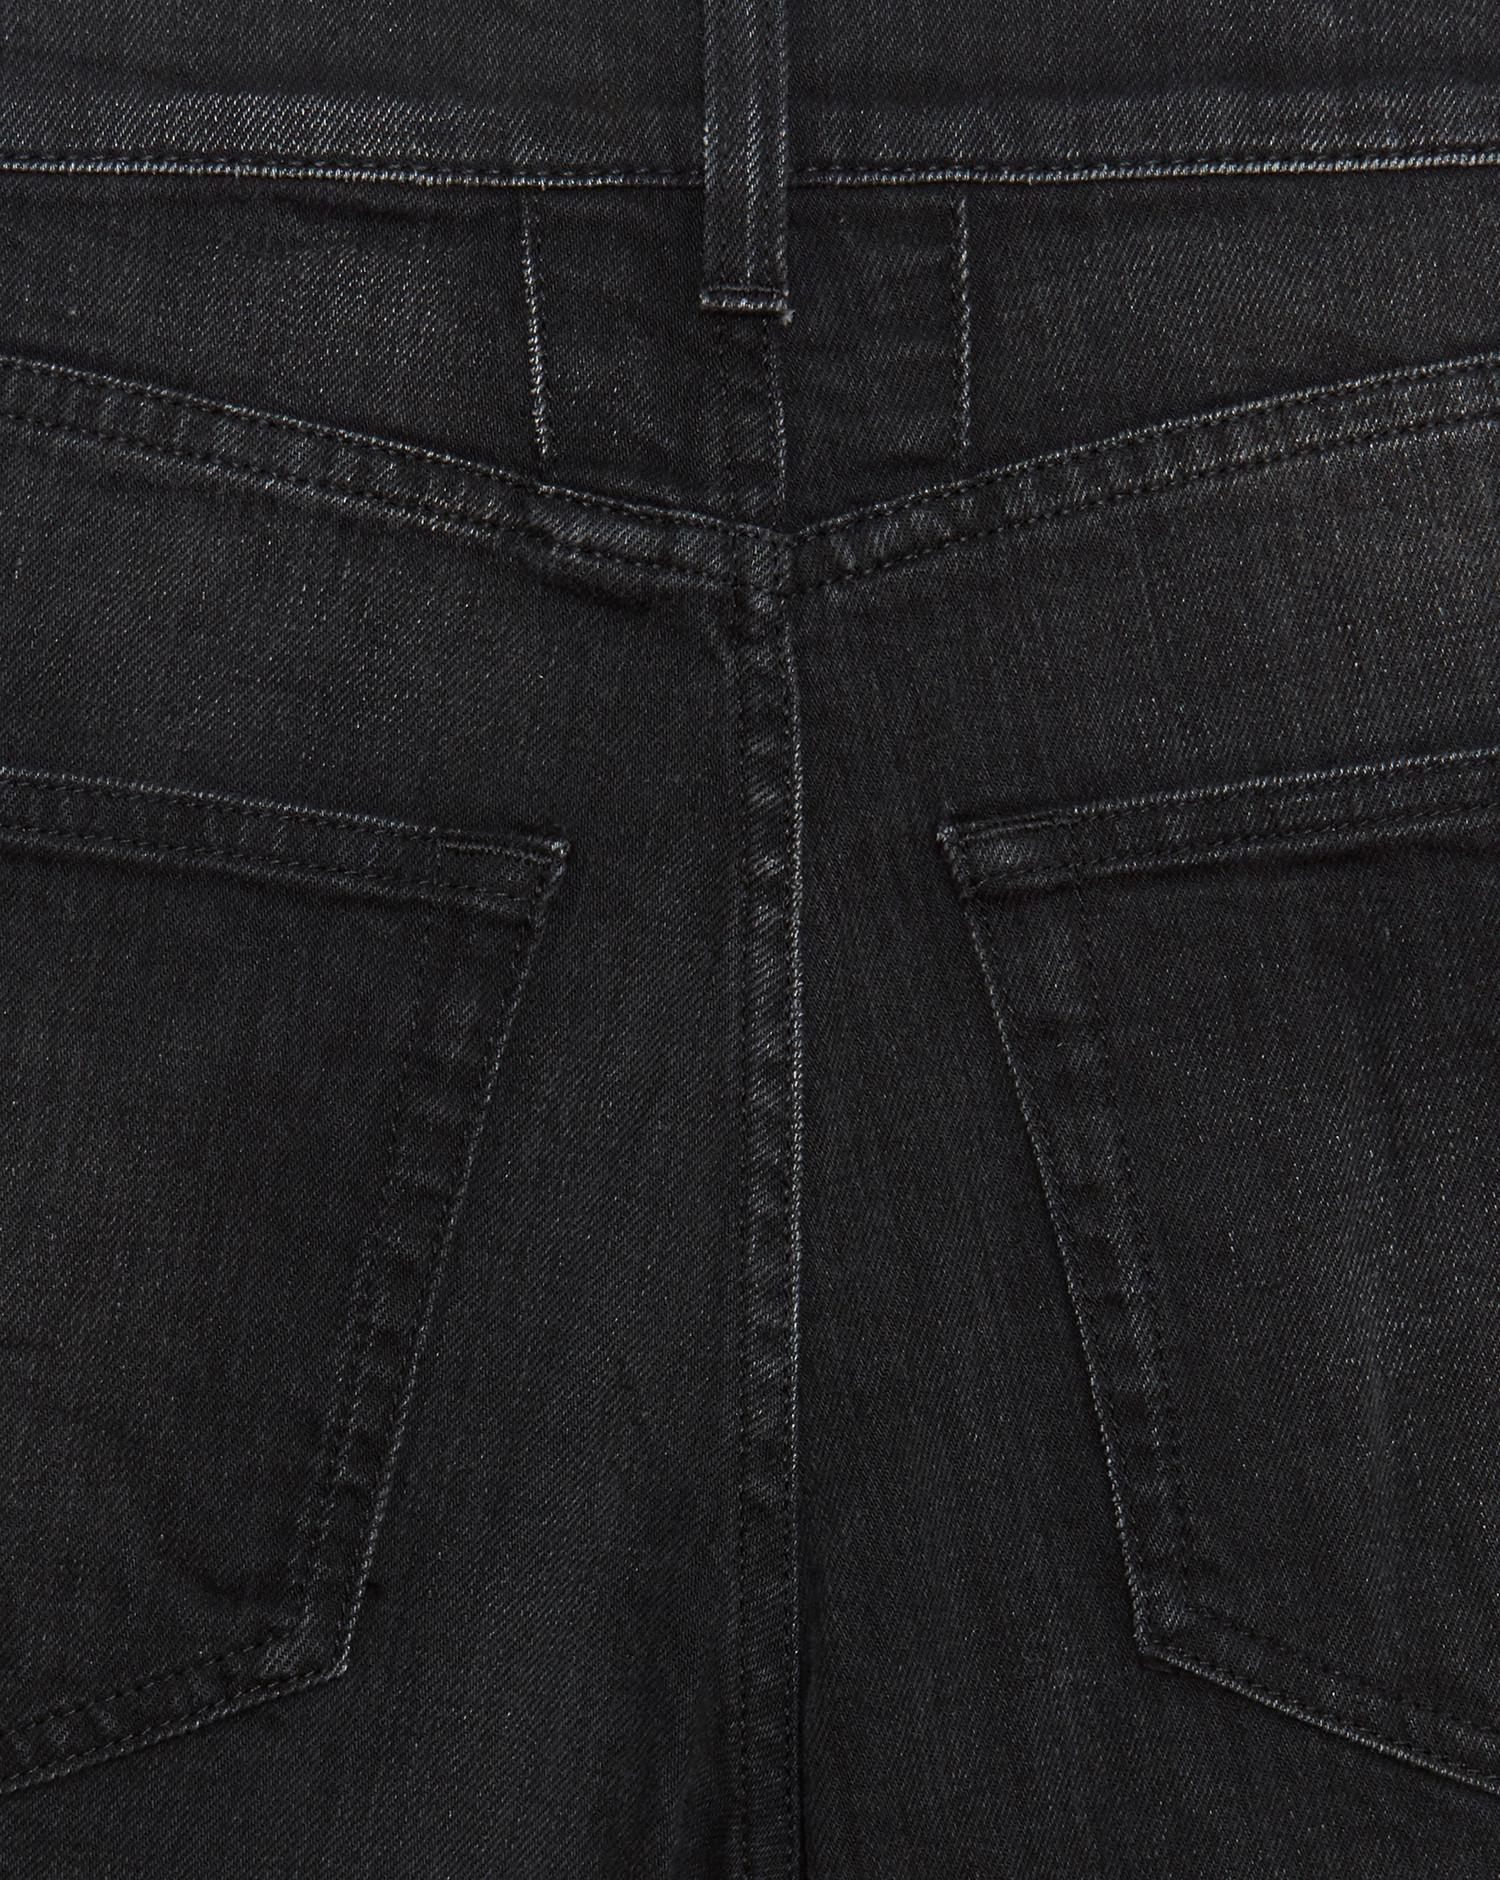 83a34dcd1a Saint Laurent Original Low Waisted Raw Edge Skinny Jean In Lightly Used  Black Stretch Denim for men